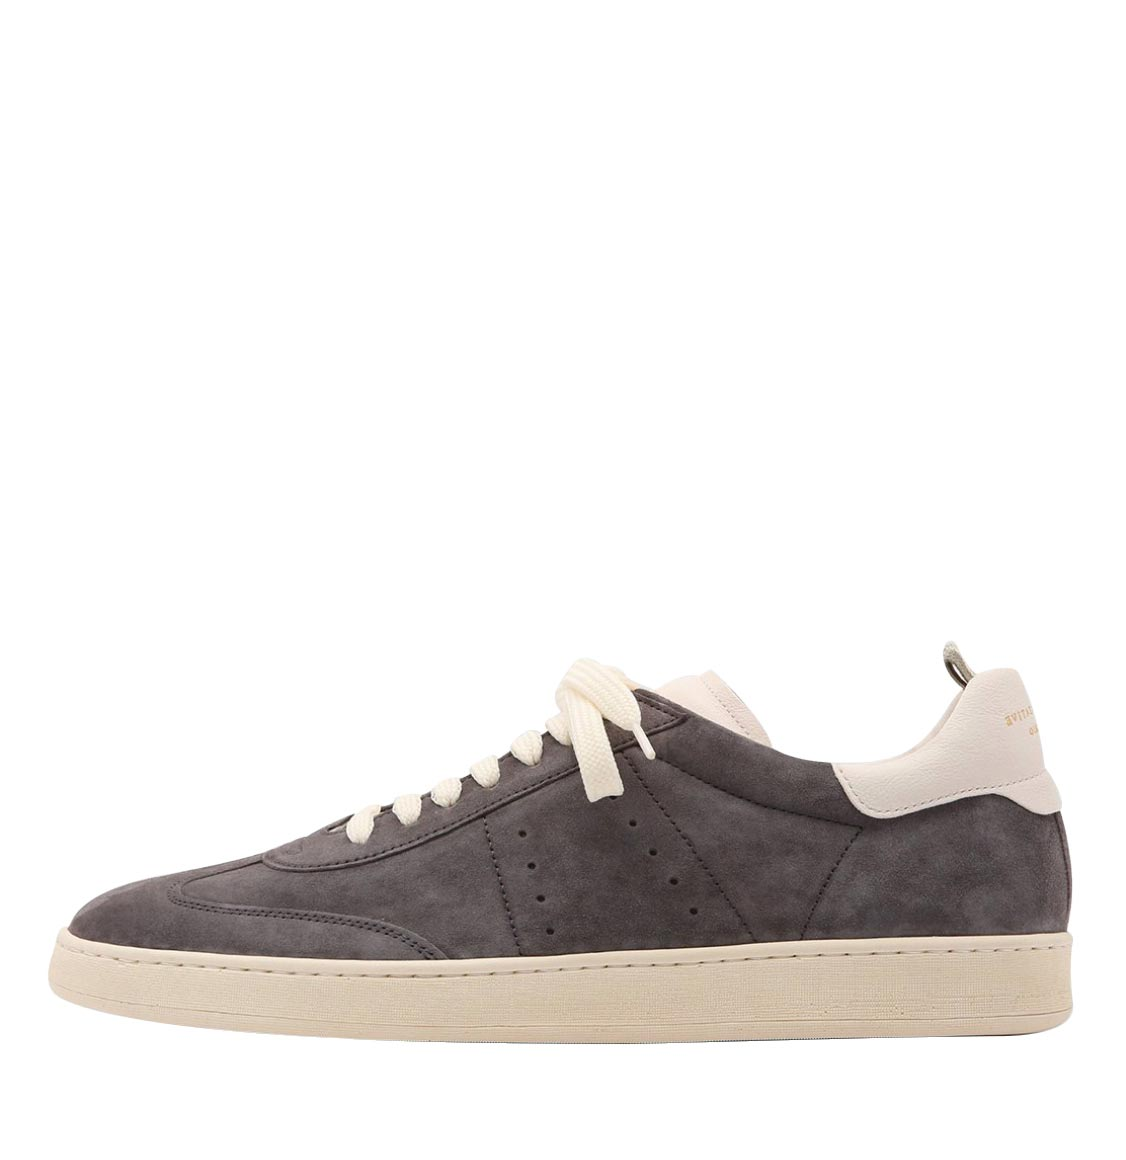 Officine Creative Kombo Grey Suede Leather Sneakers